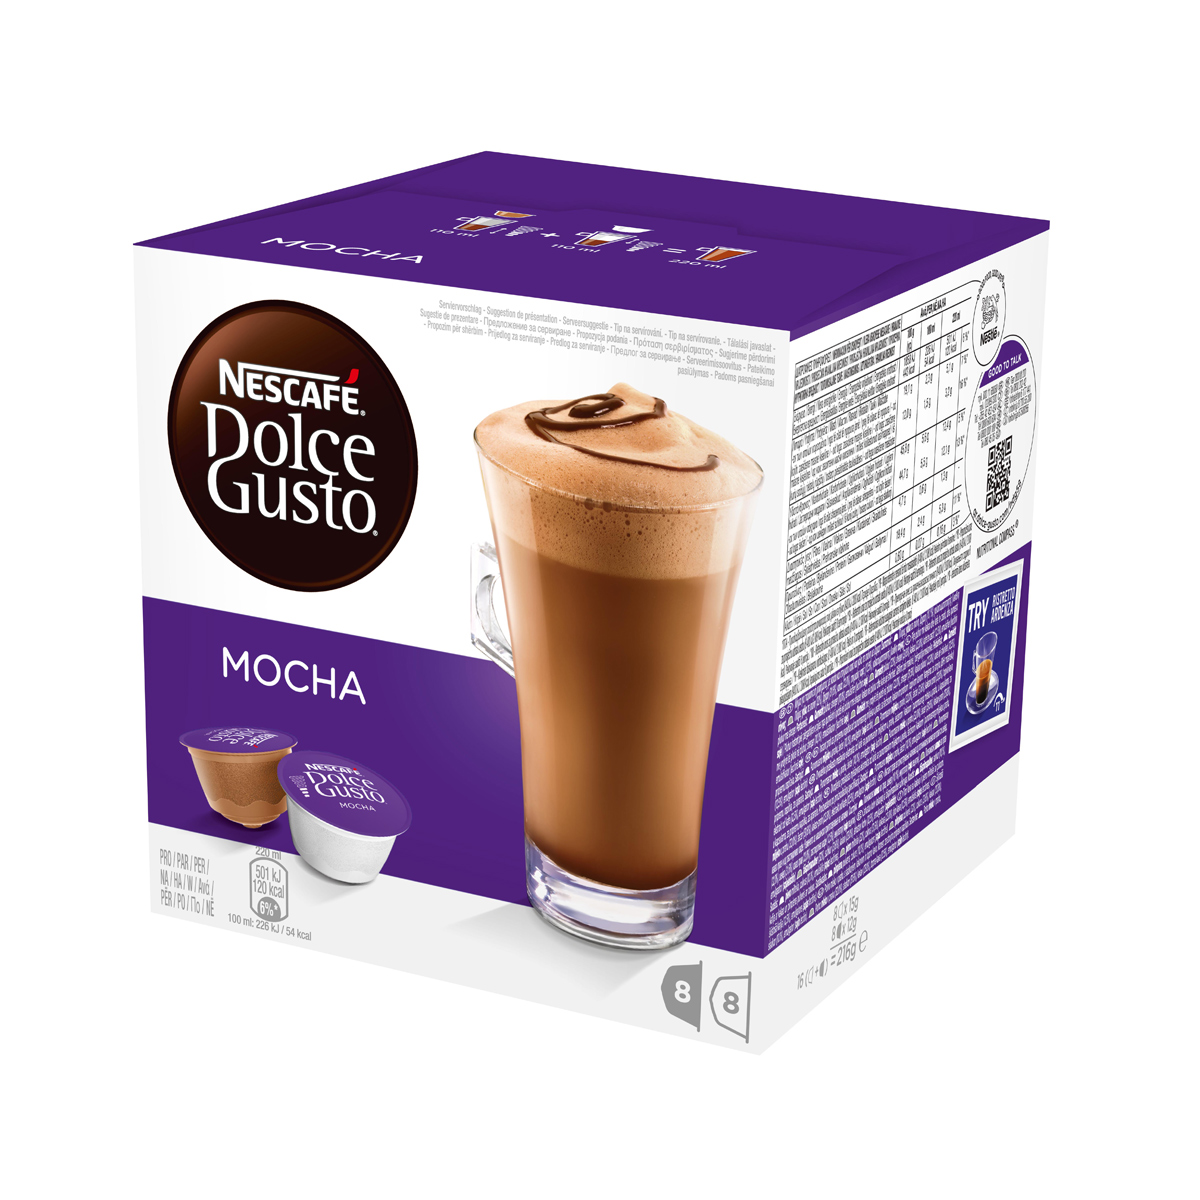 Buy Nescafe dolce gusto more interesting cool thinking chocolate ...